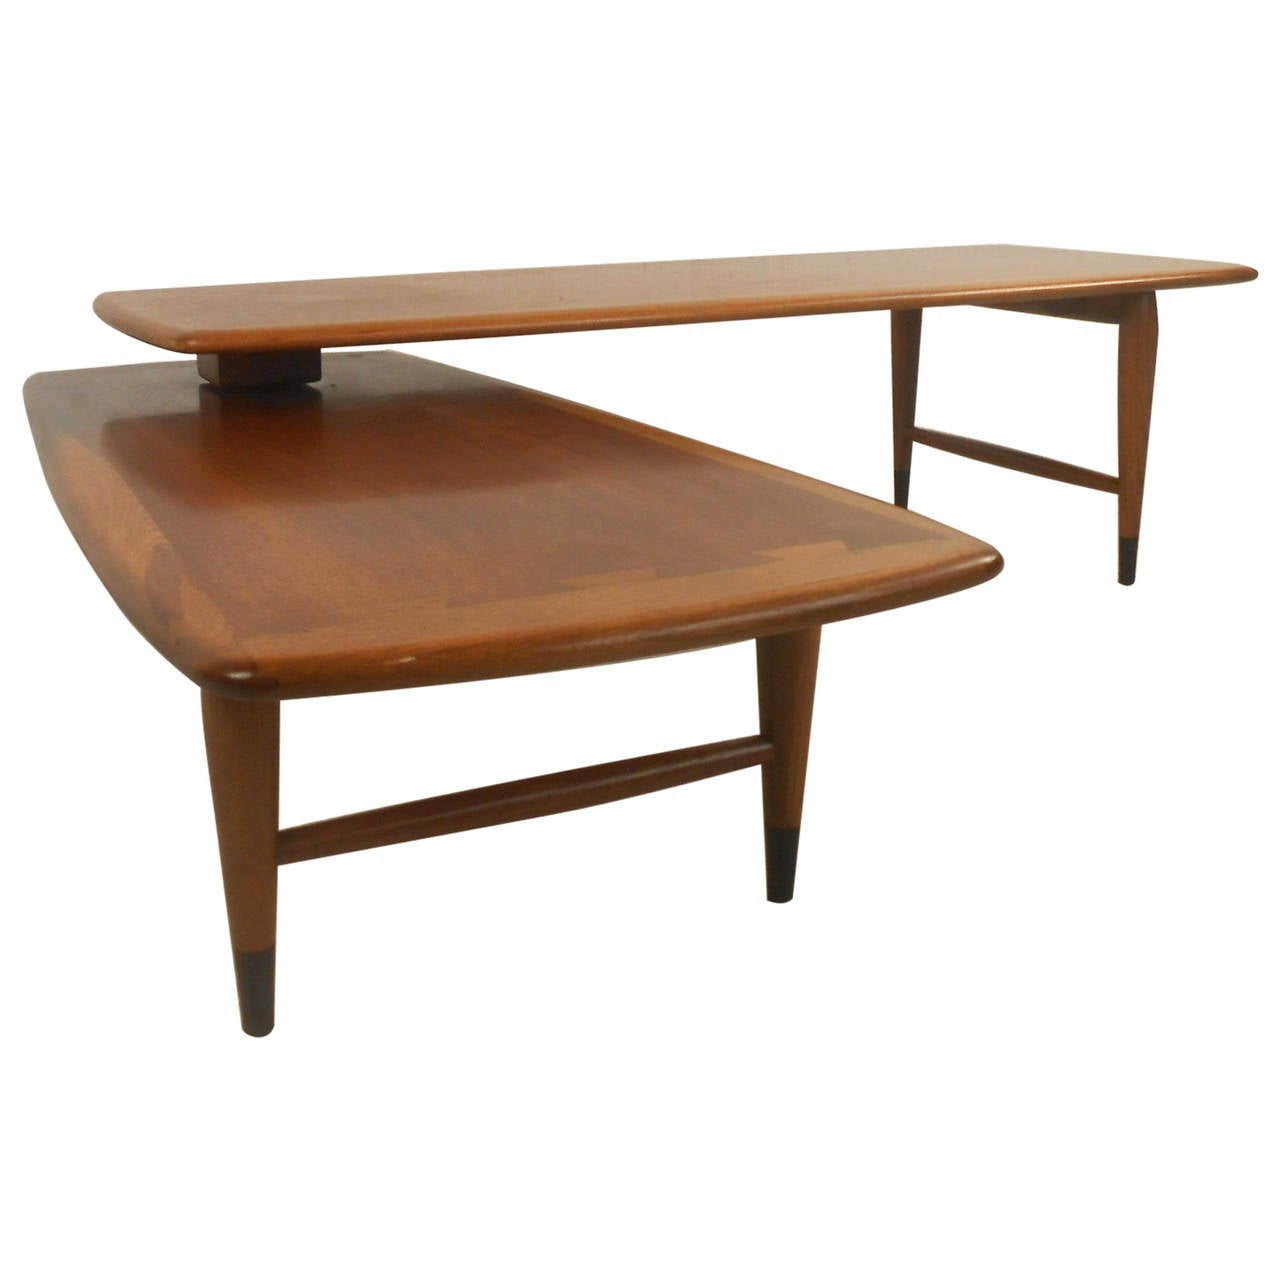 Mid-Century Modern Expanding Coffee Table by Lane 1 - Mid-Century Modern Expanding Coffee Table By Lane For Sale At 1stdibs